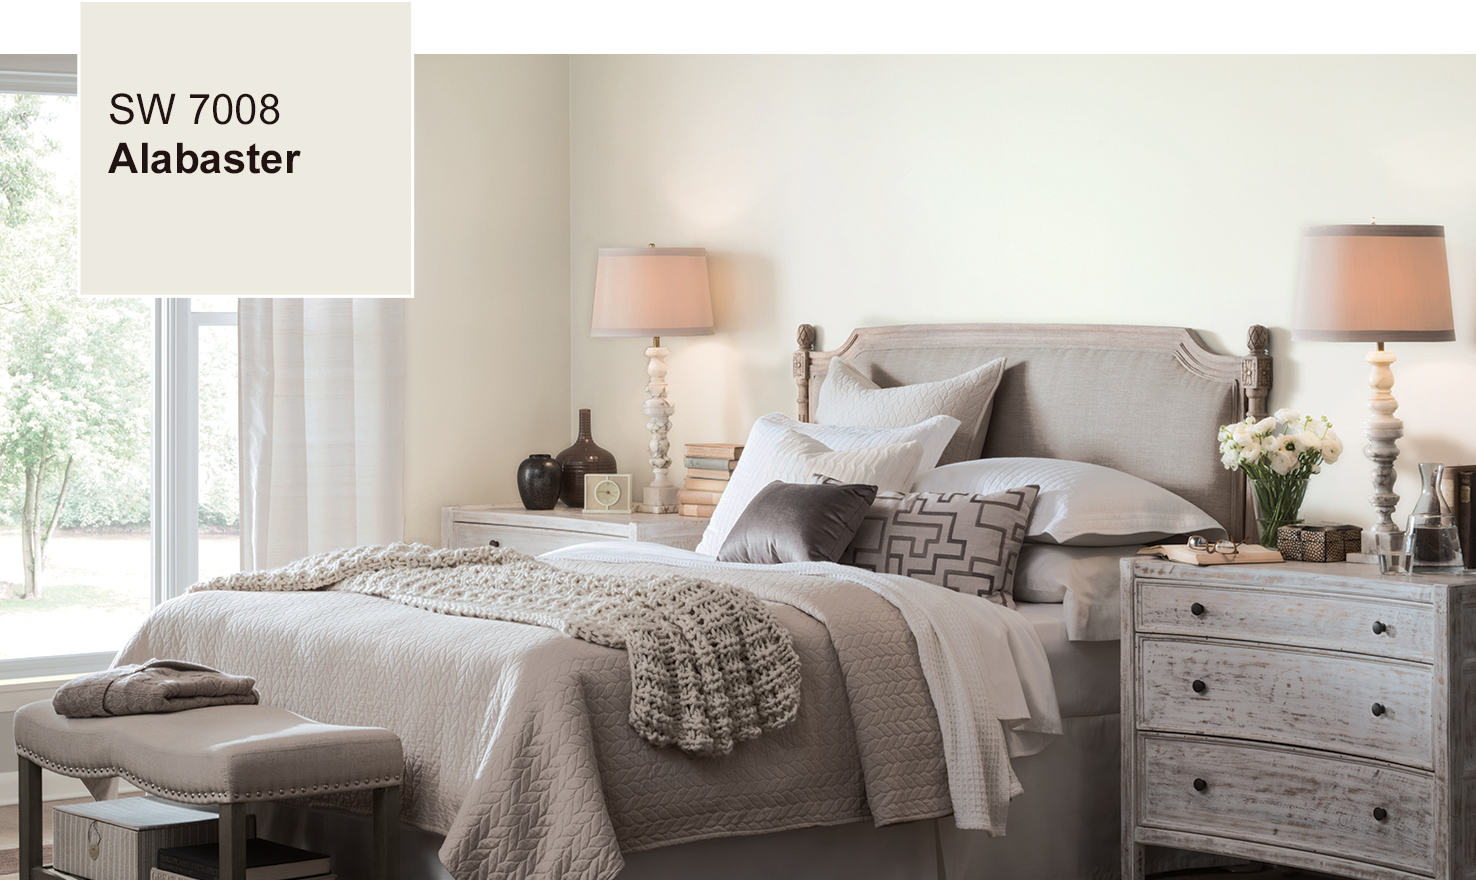 SW 7008 Alabaster - 2016 Color of the Year - Sherwin-Williams